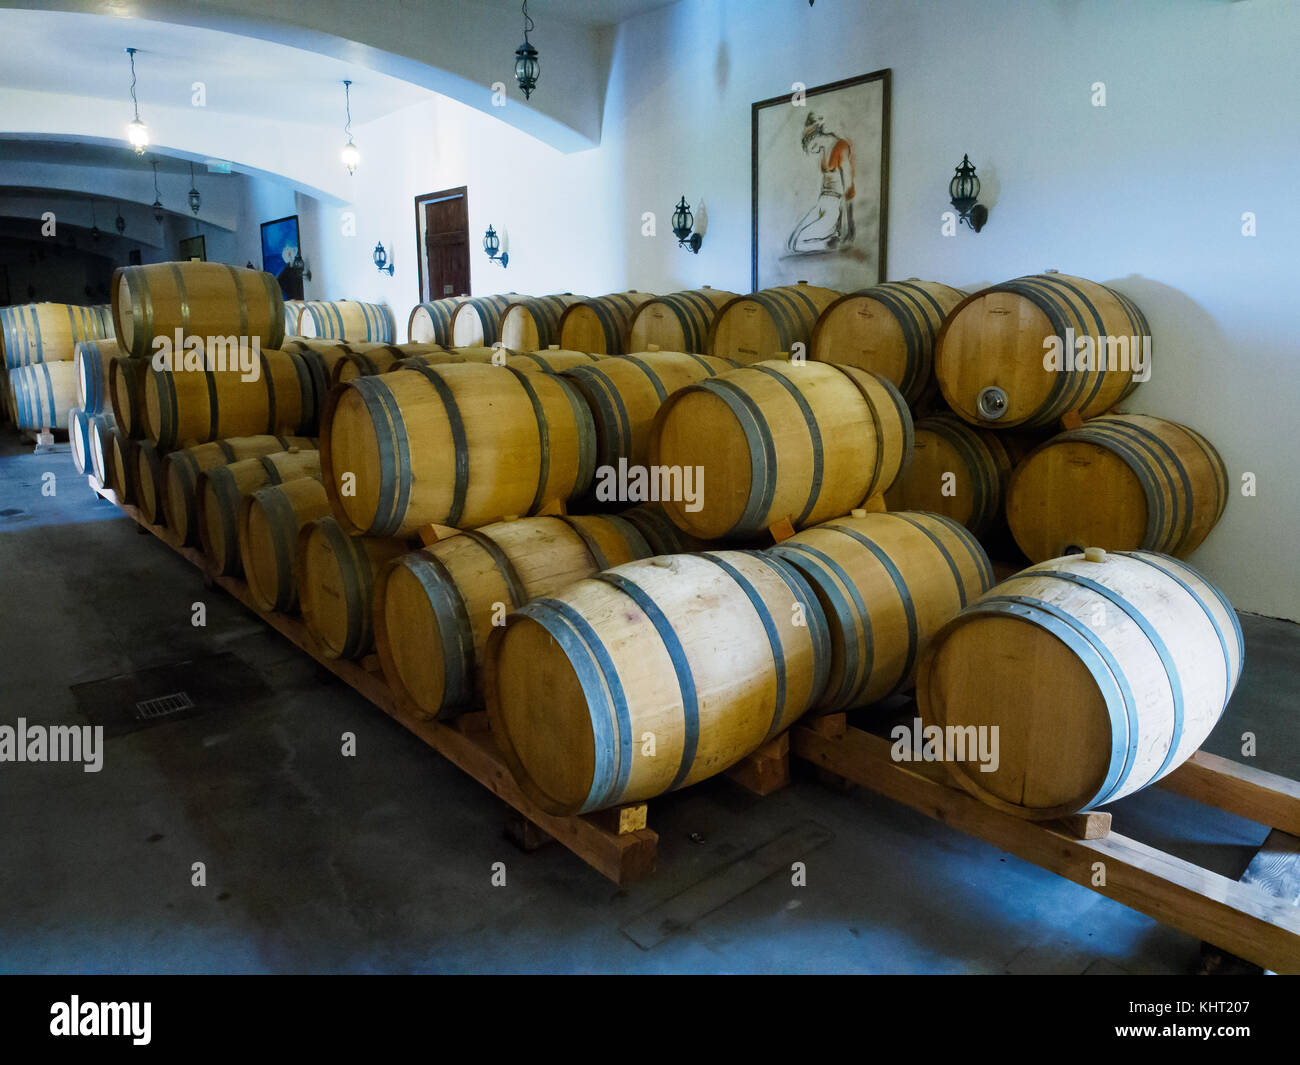 Wine barrels lined up in the winery storage room. - Stock Image